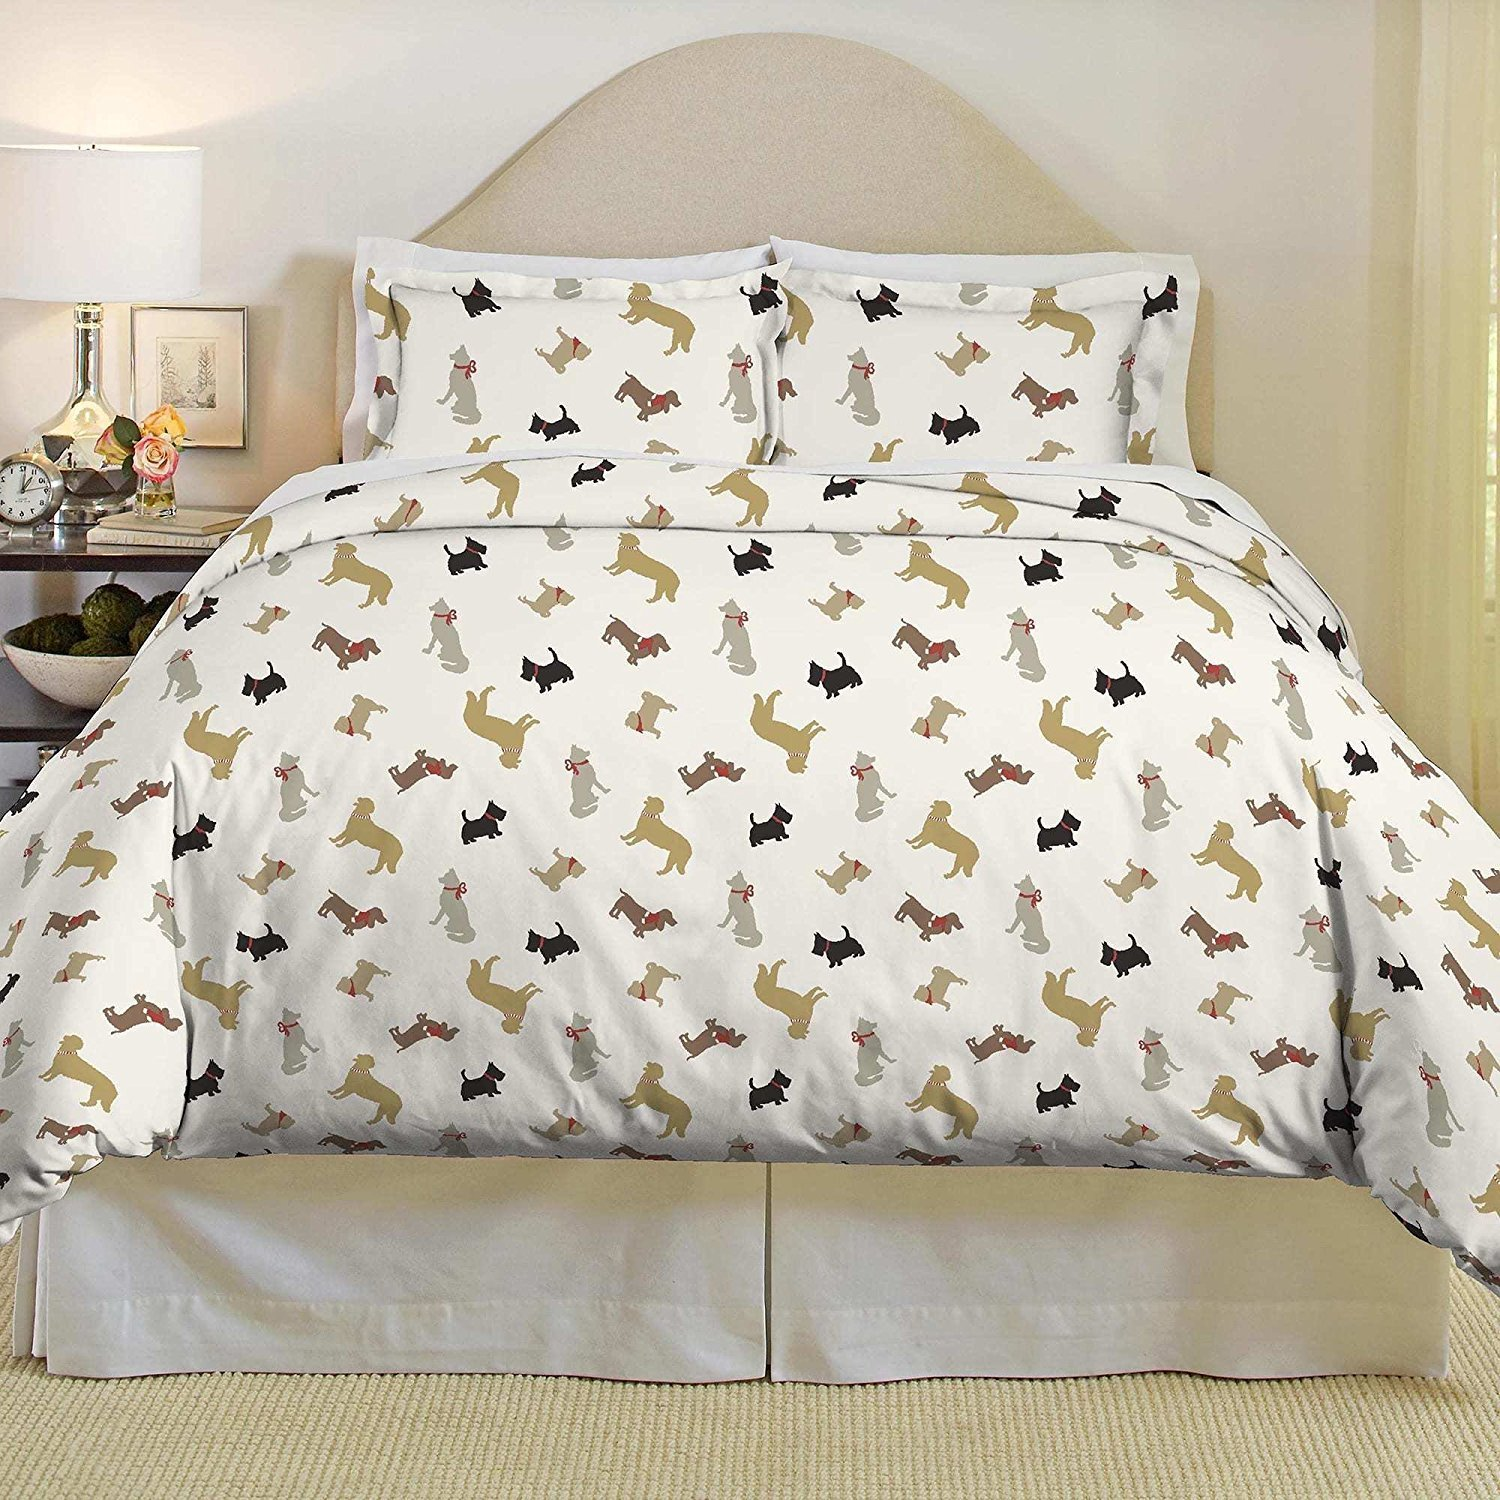 3pc Trendy Black Beige Grey Red White Full Queen Duvet Cover Set, Dog Themed Bedding Animal Modern Shabby Fun Daschund Chic Puppy Cute Adorable Casual Stylish, Cotton, Flannel